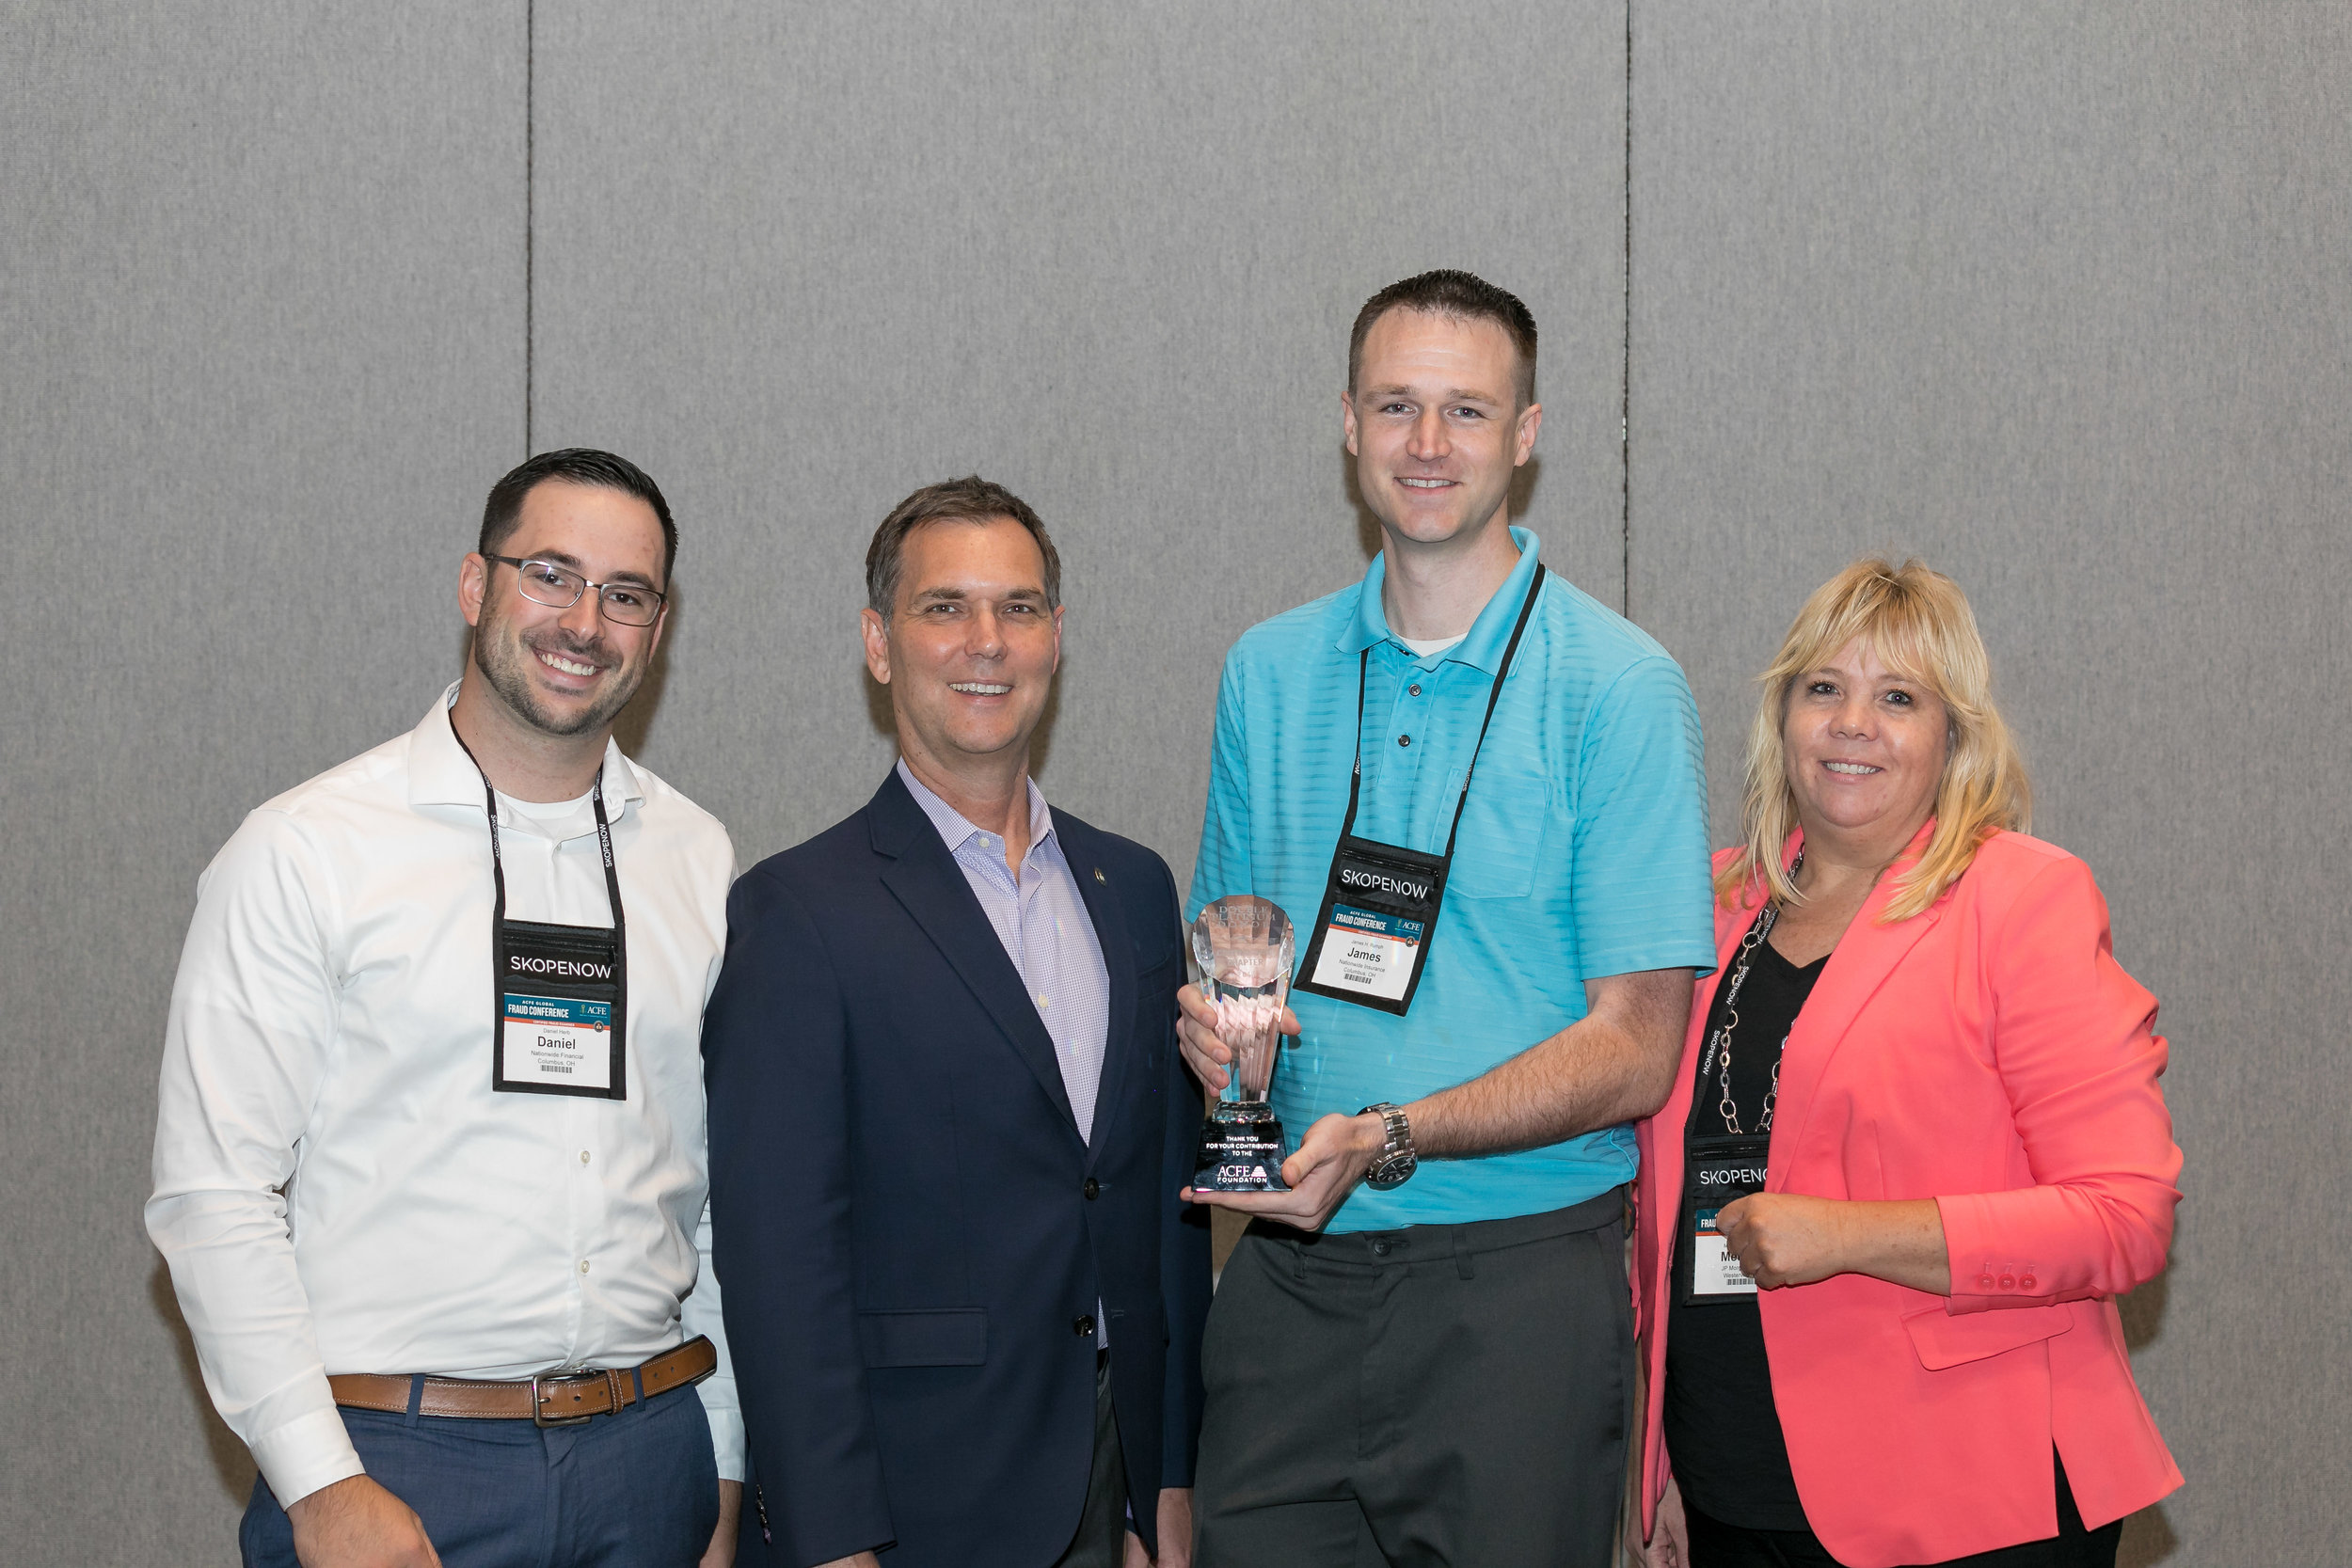 ACFE President Bruce Dorris awarding the Foundation Award to Central Ohio Chapter Leaders Daniel Herb, James Rumph, and Melissa Butsko.